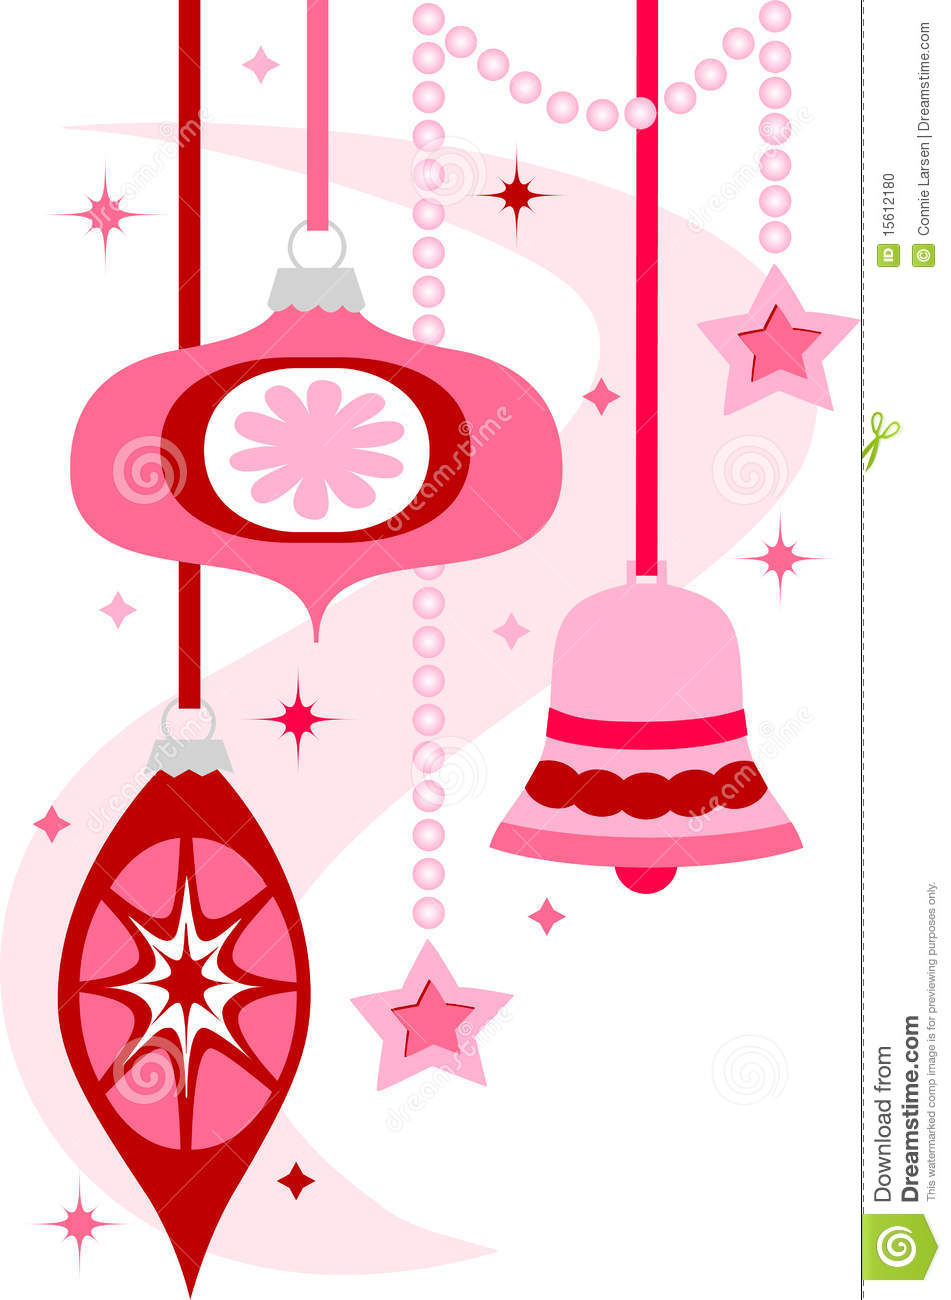 951x1300 Vintage Christmas Ornament Clipart